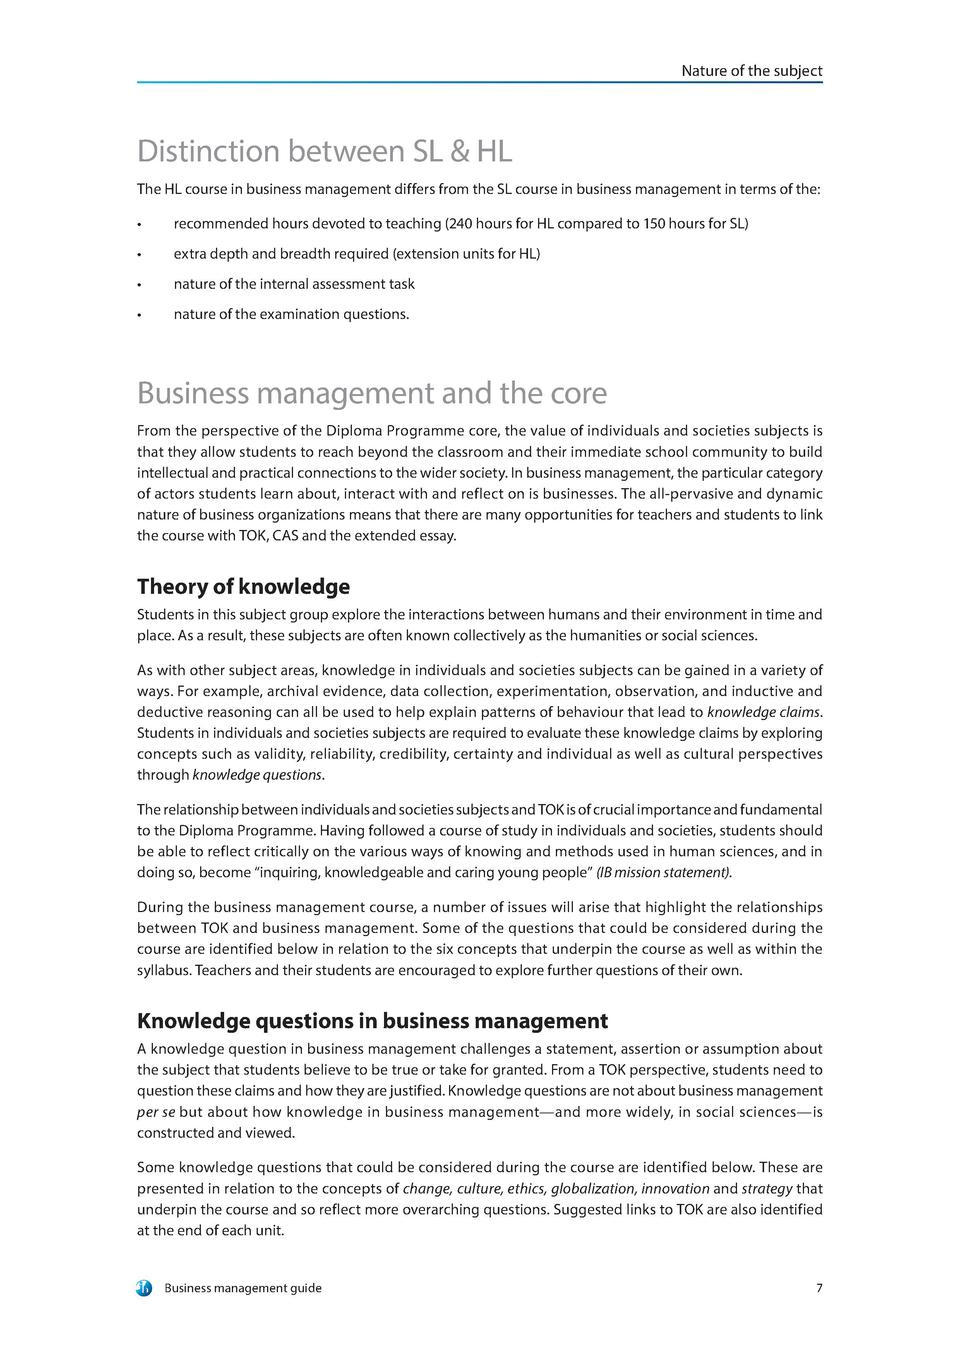 IB Business and Management Guide : simplebooklet com